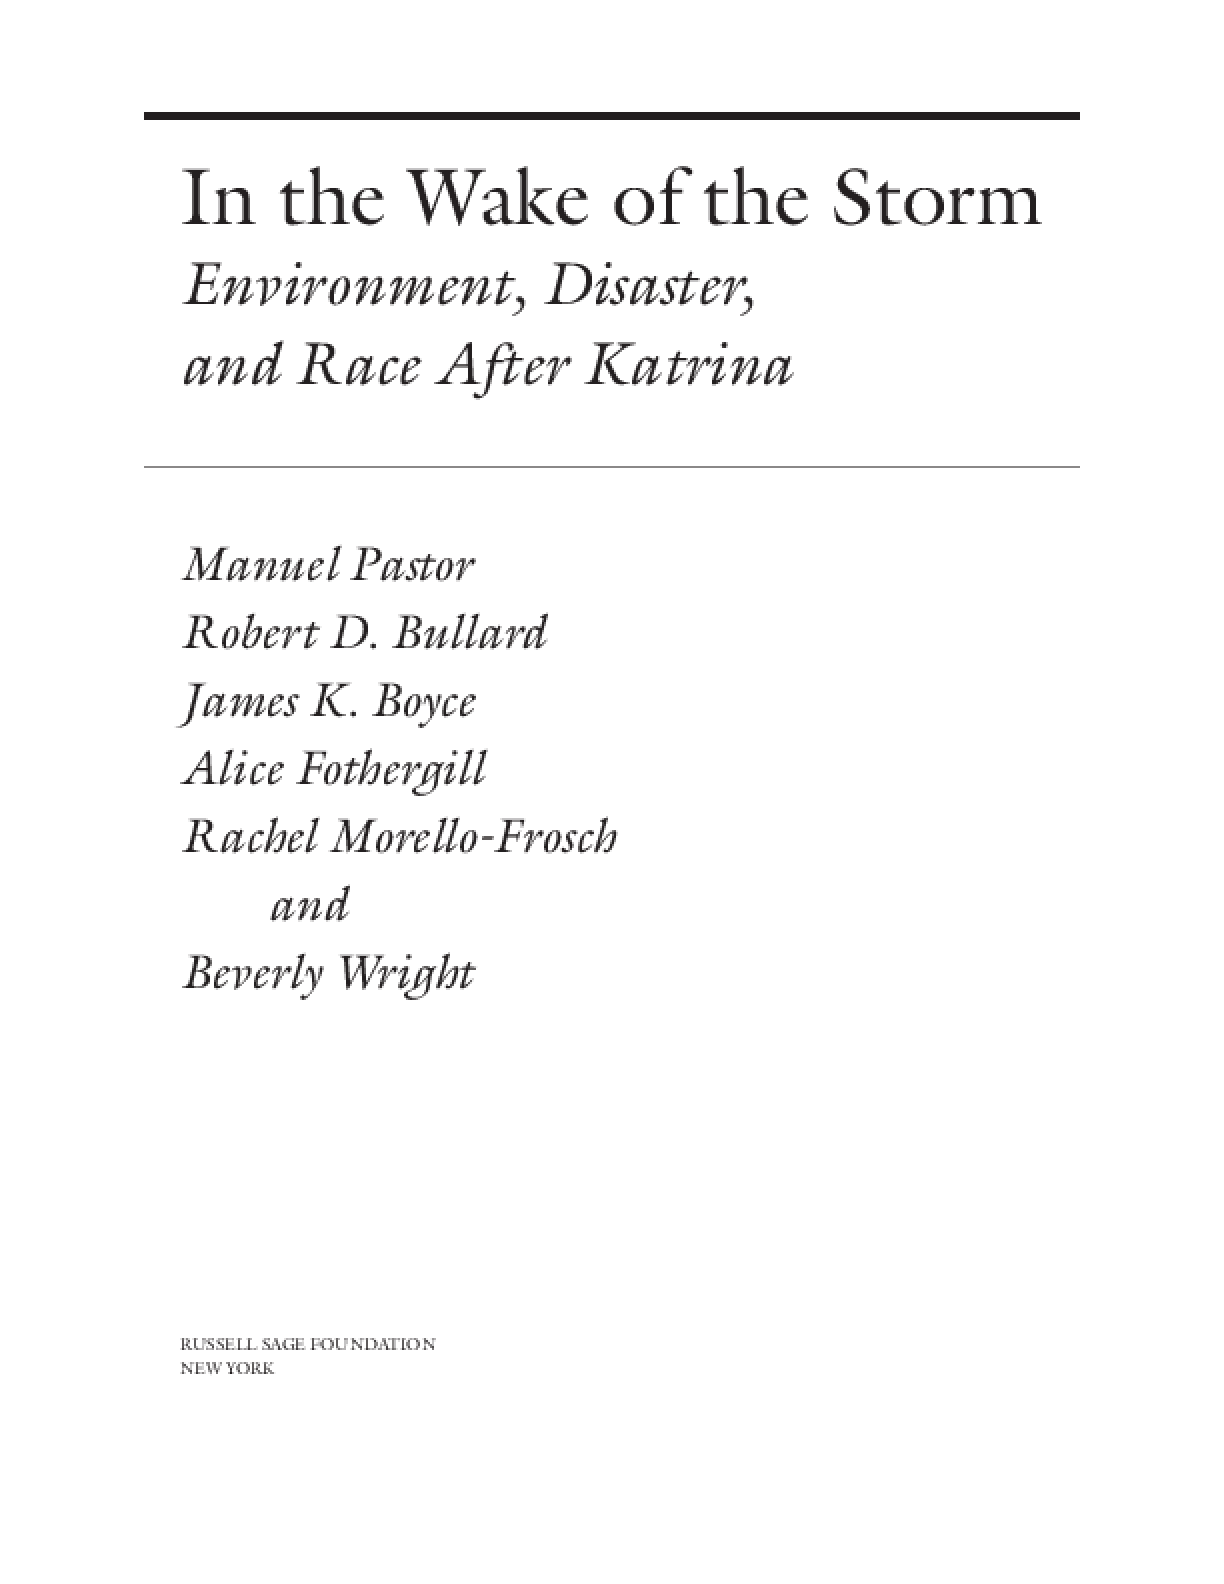 In the Wake of the Storm: Environment, Disaster, and Race After Katrina